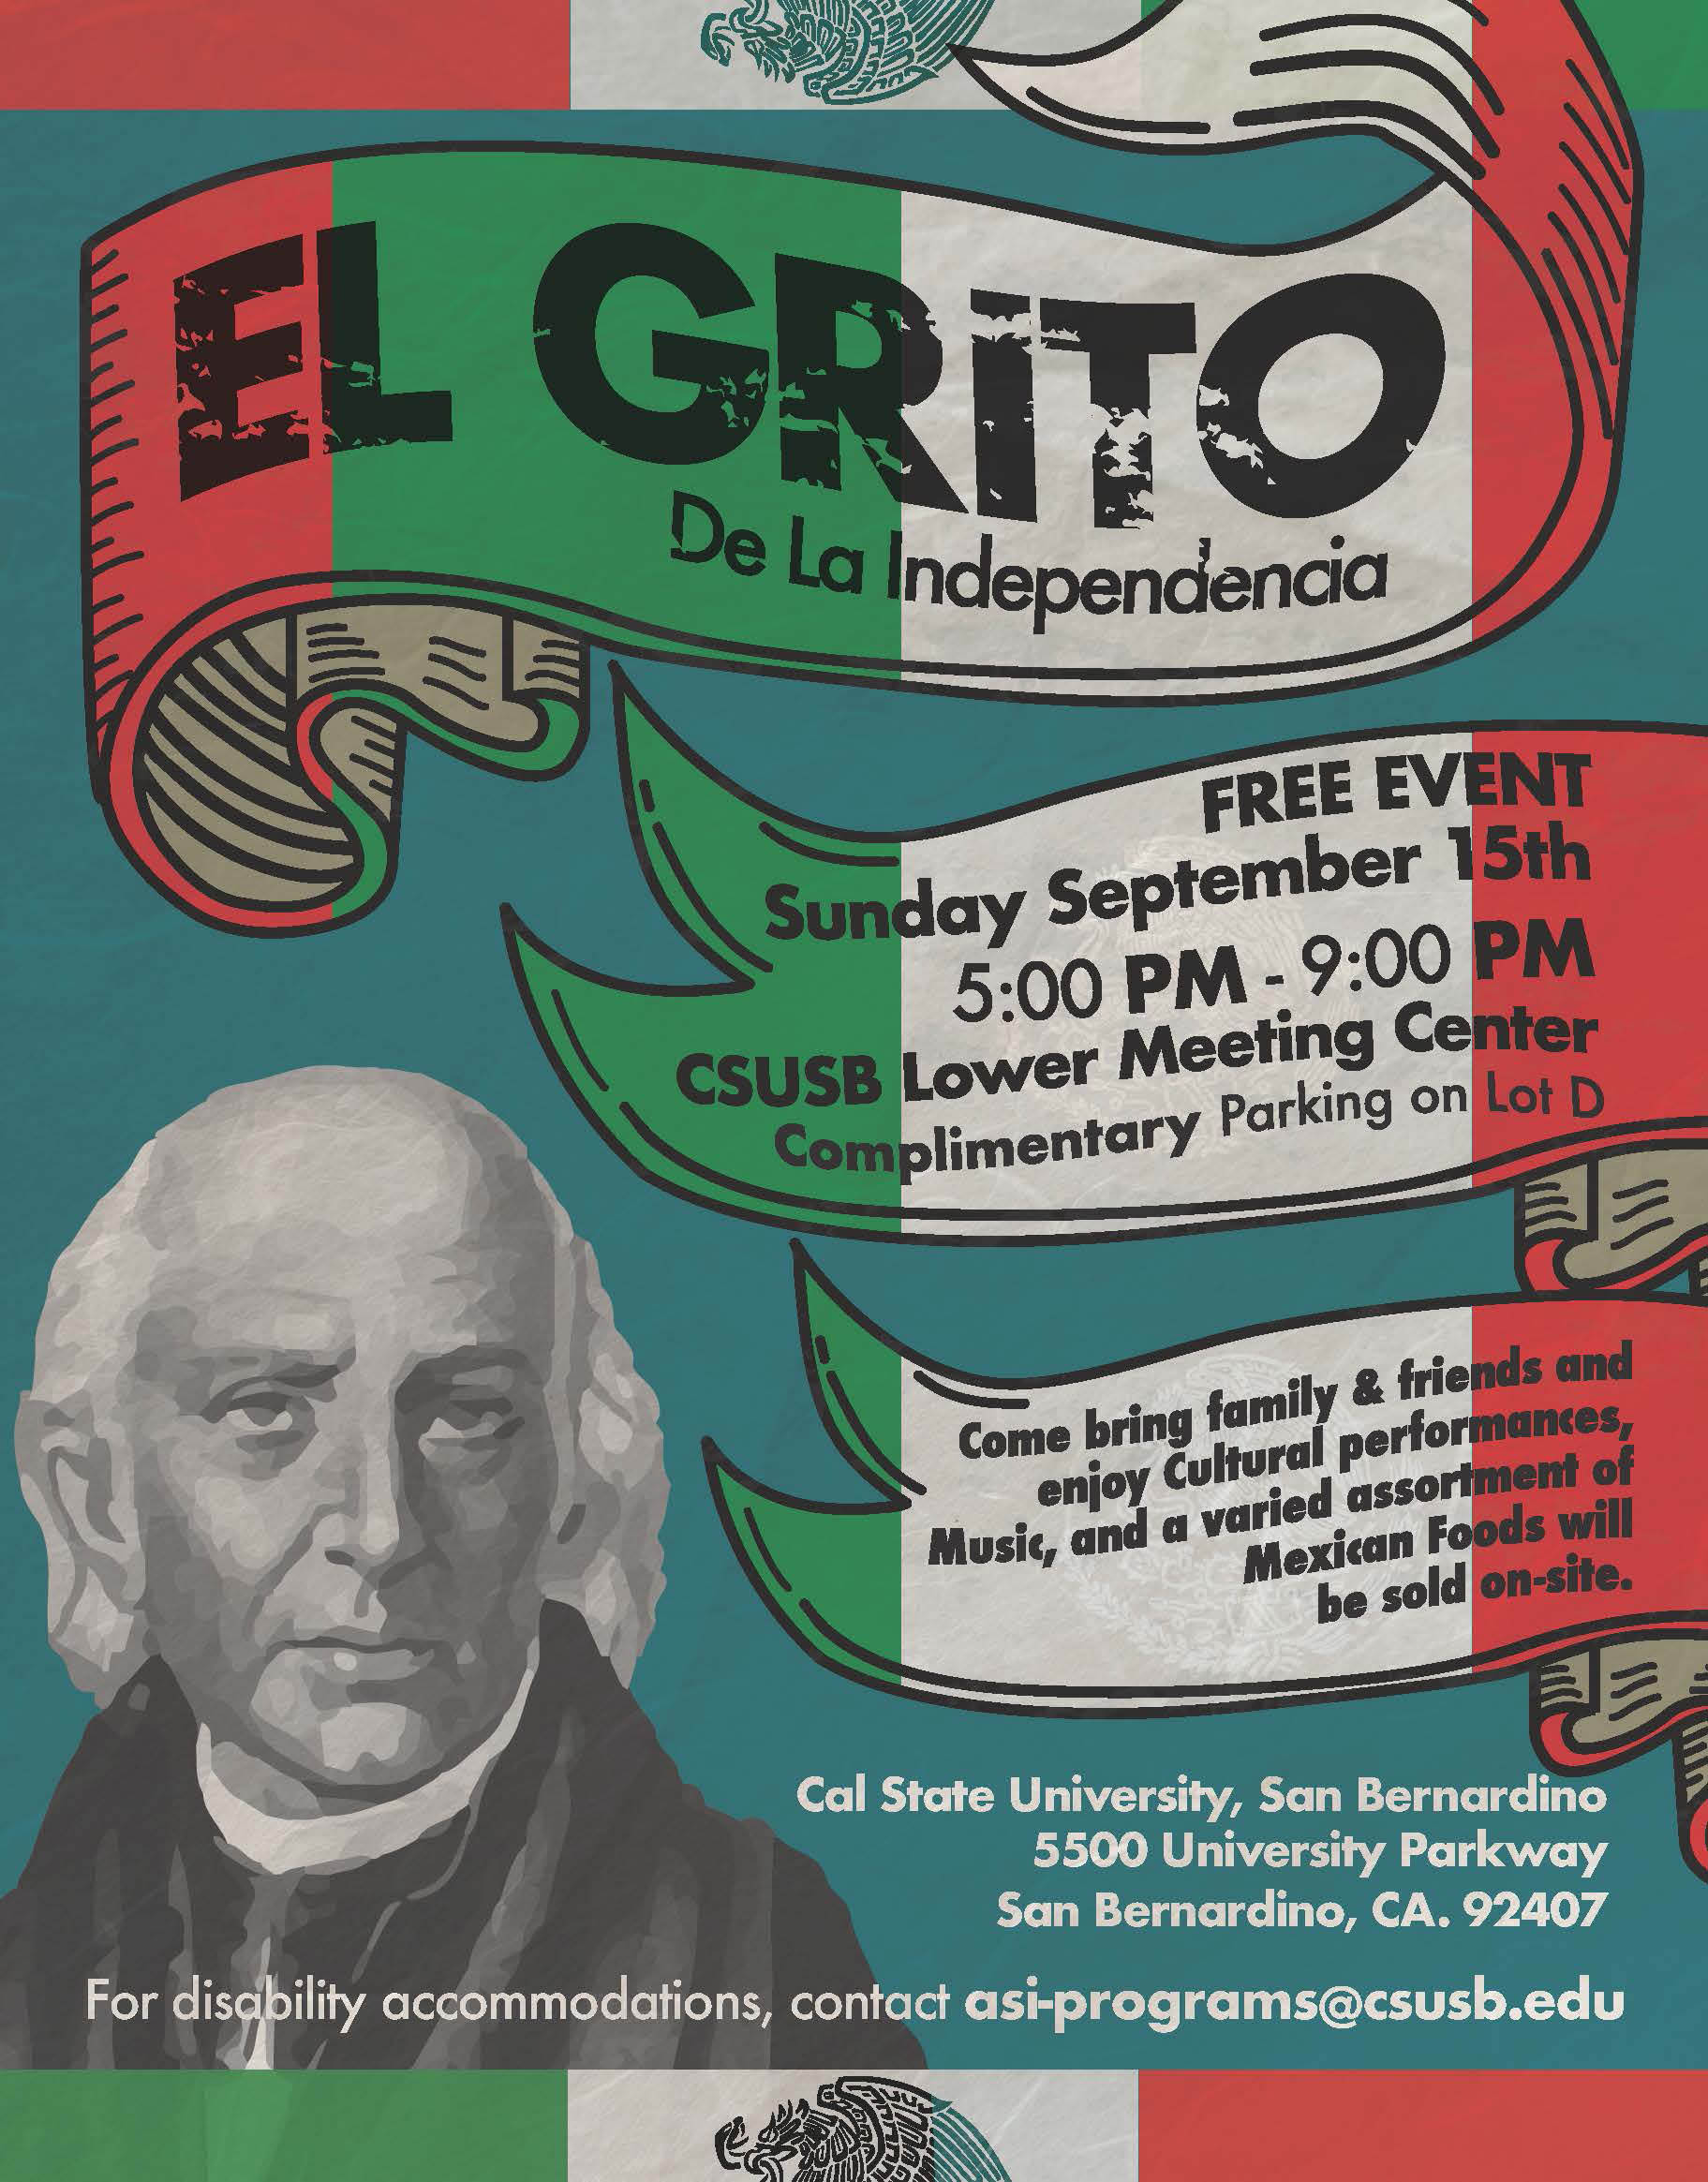 CSUSB & Mexican Consulate to host Mexican Independence Day celebration on campus on Sept. 15, flier.